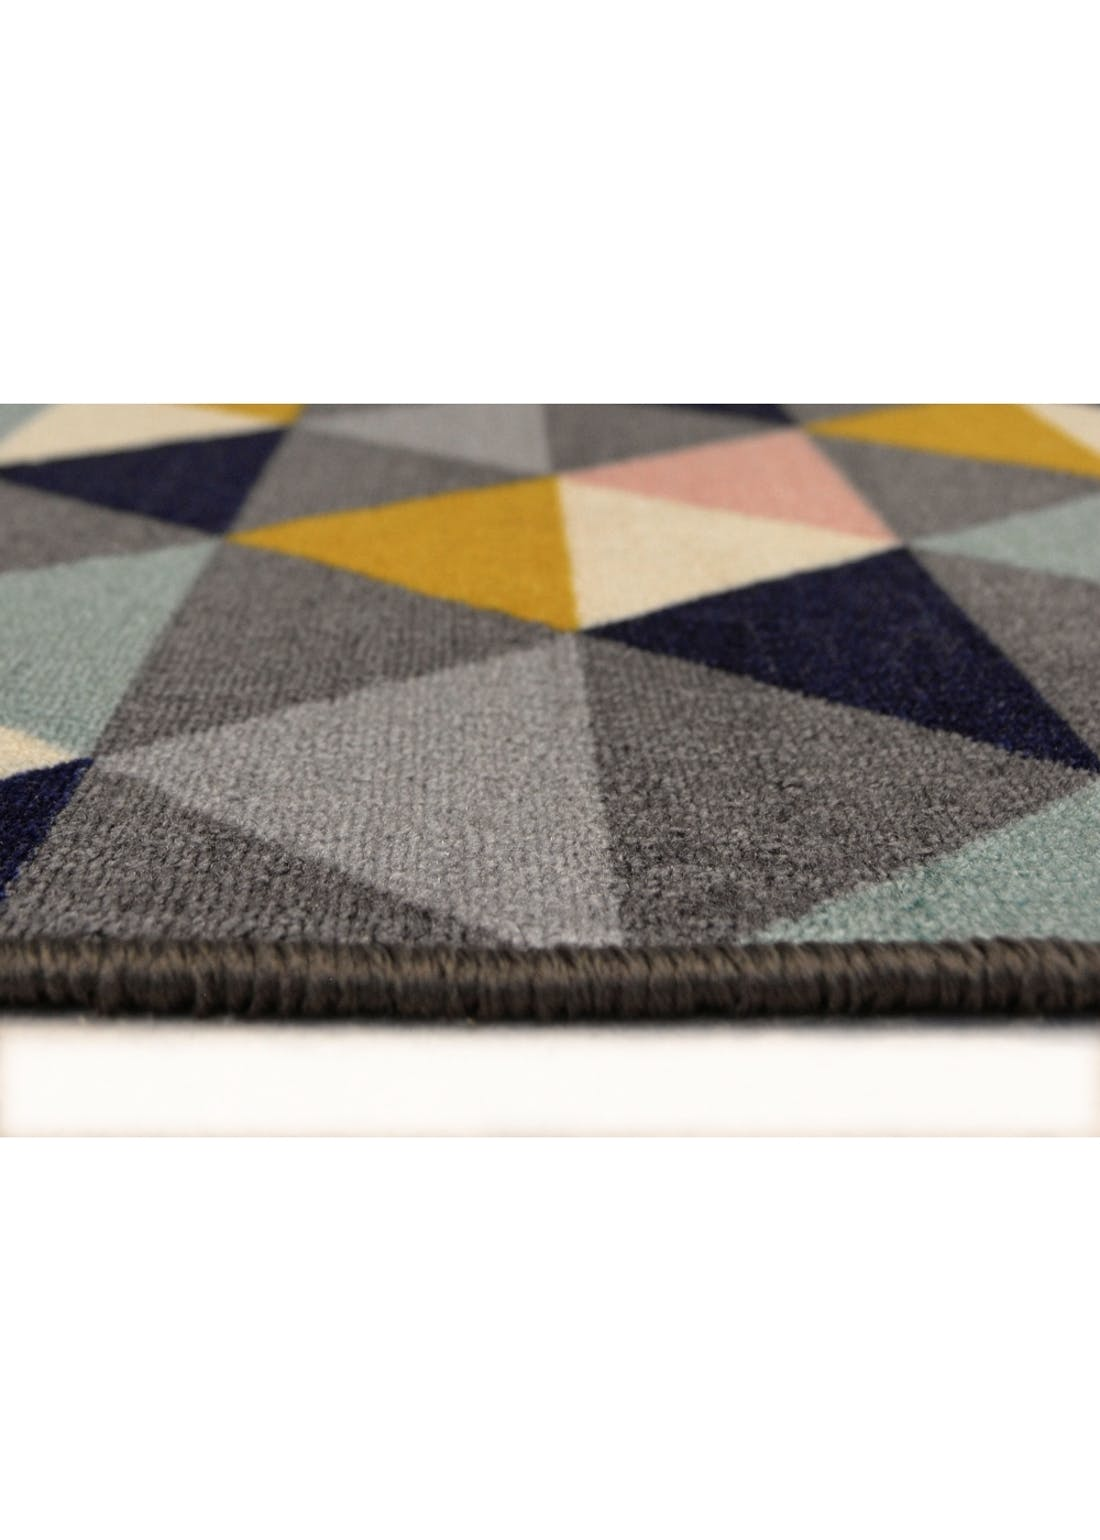 Homemaker Triangle Print Runner & Mat Set